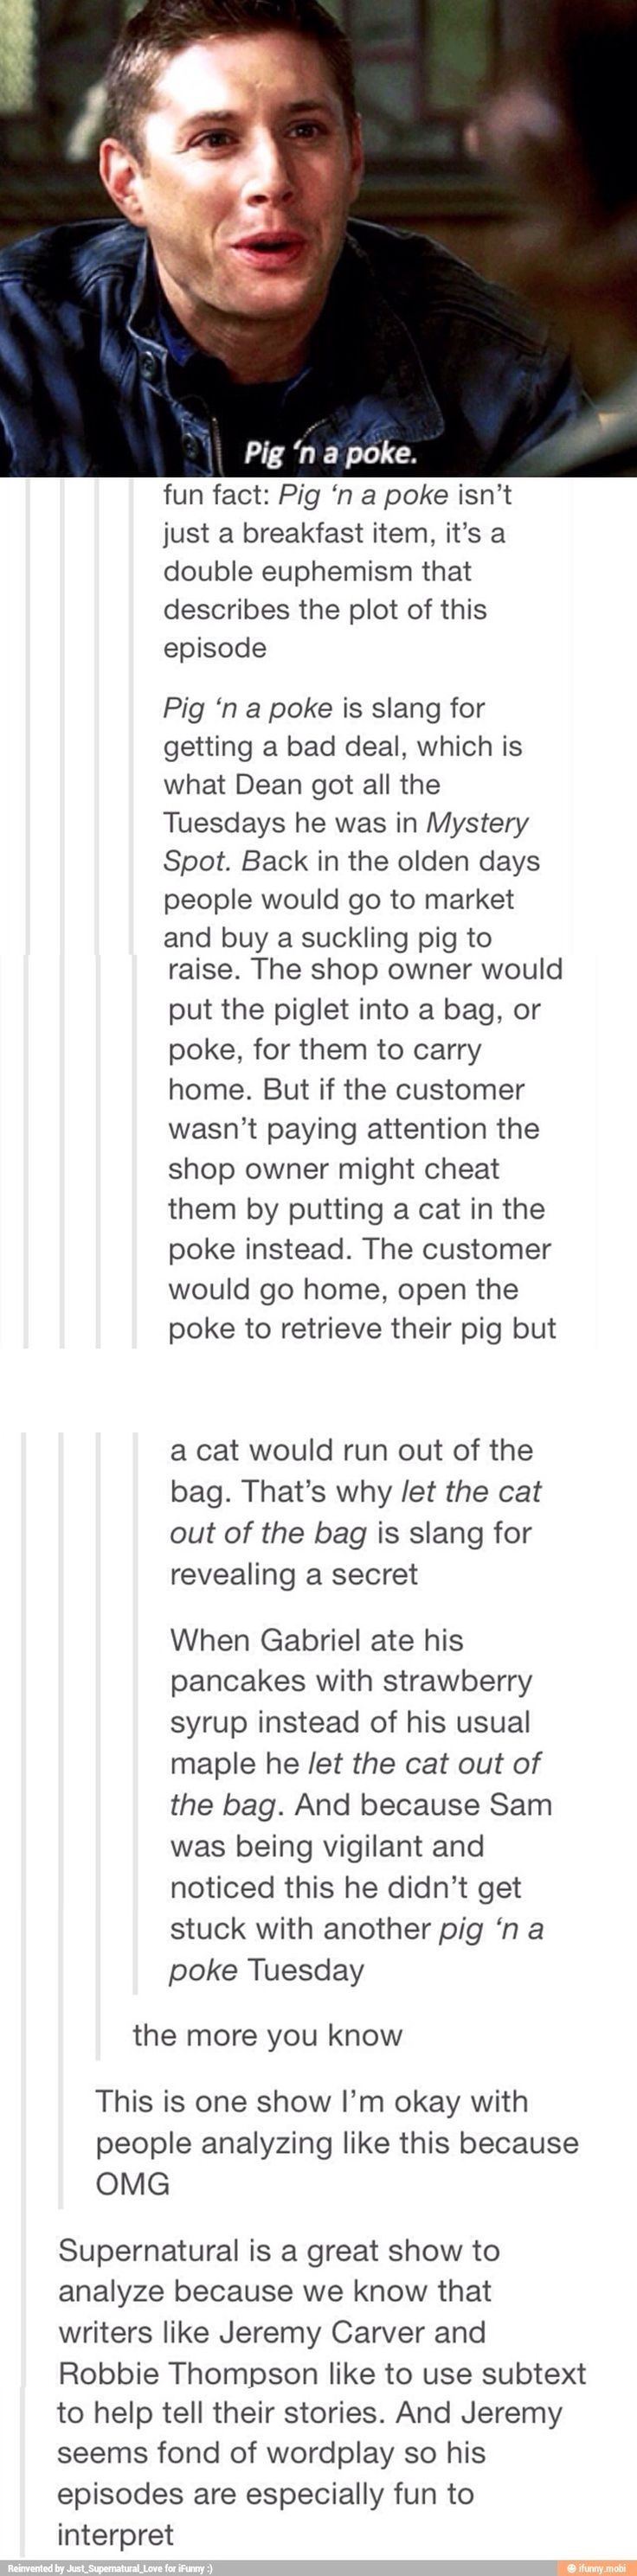 Pig in a poke. Cat out of the bag. Supernatural